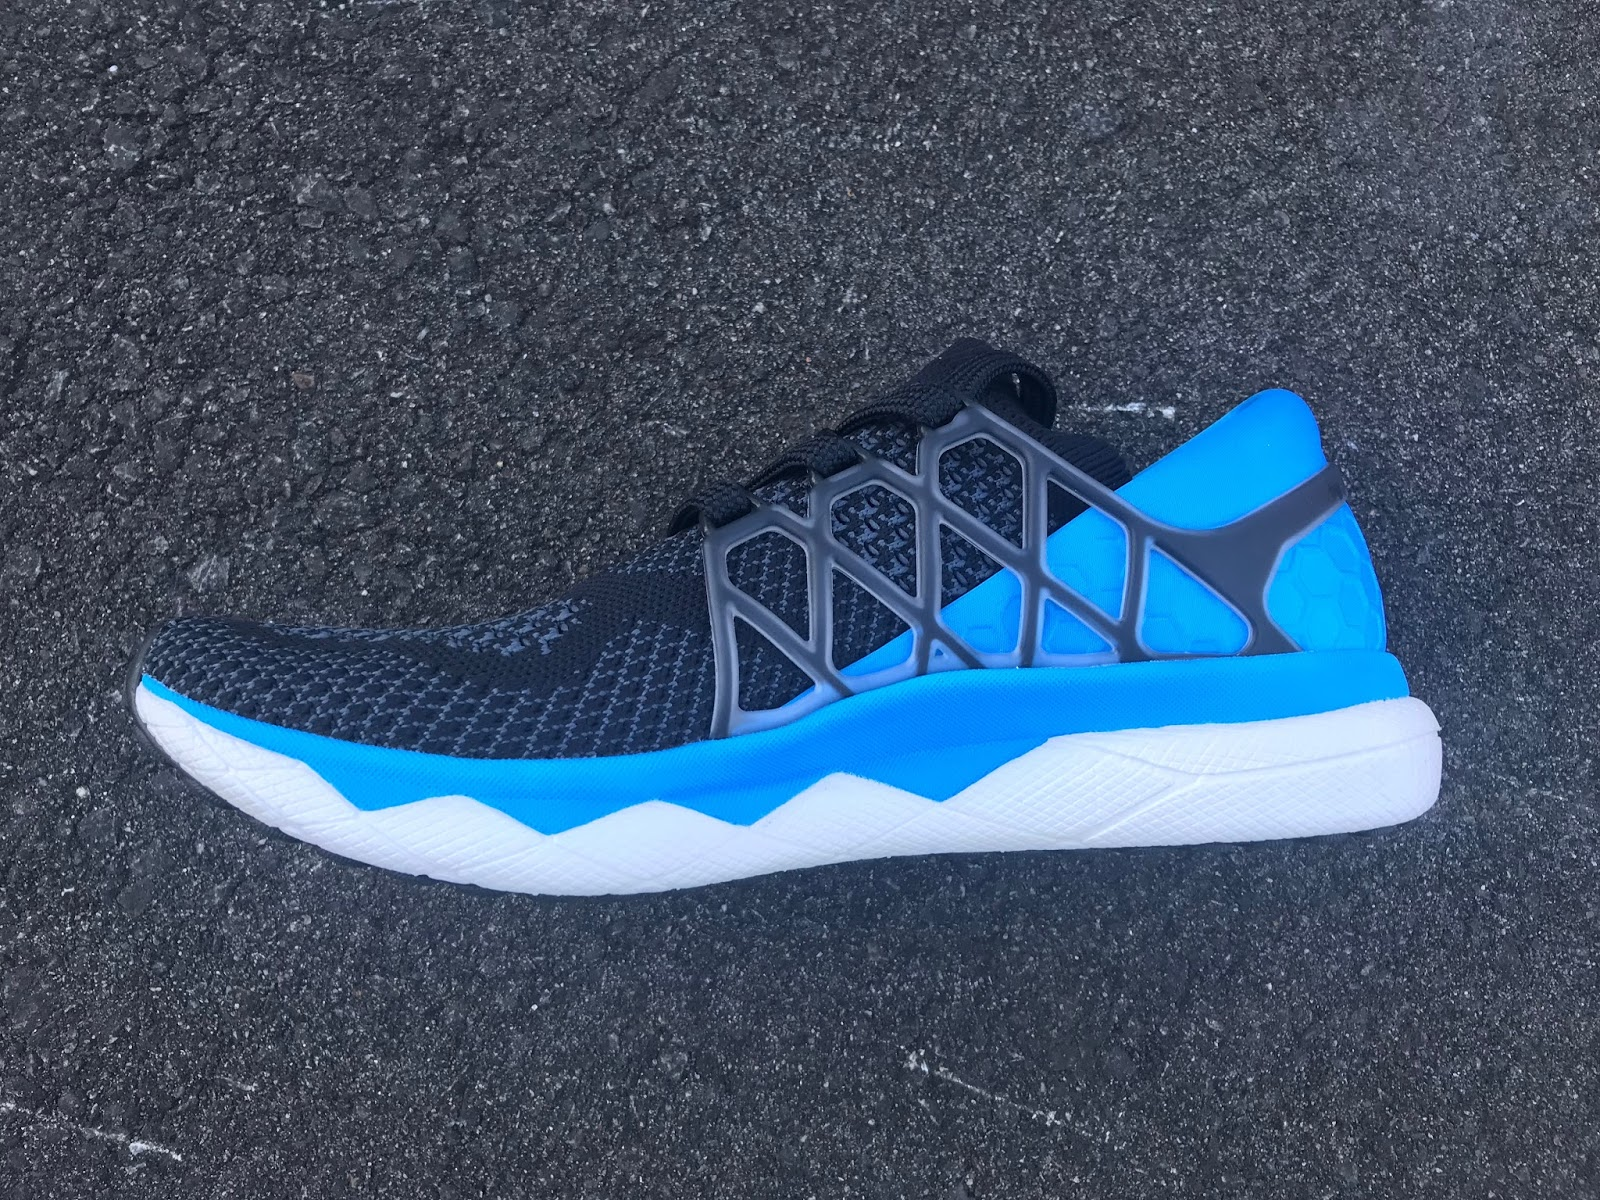 Road Trail Run: Reebok Floatride Run ULTK Review and First